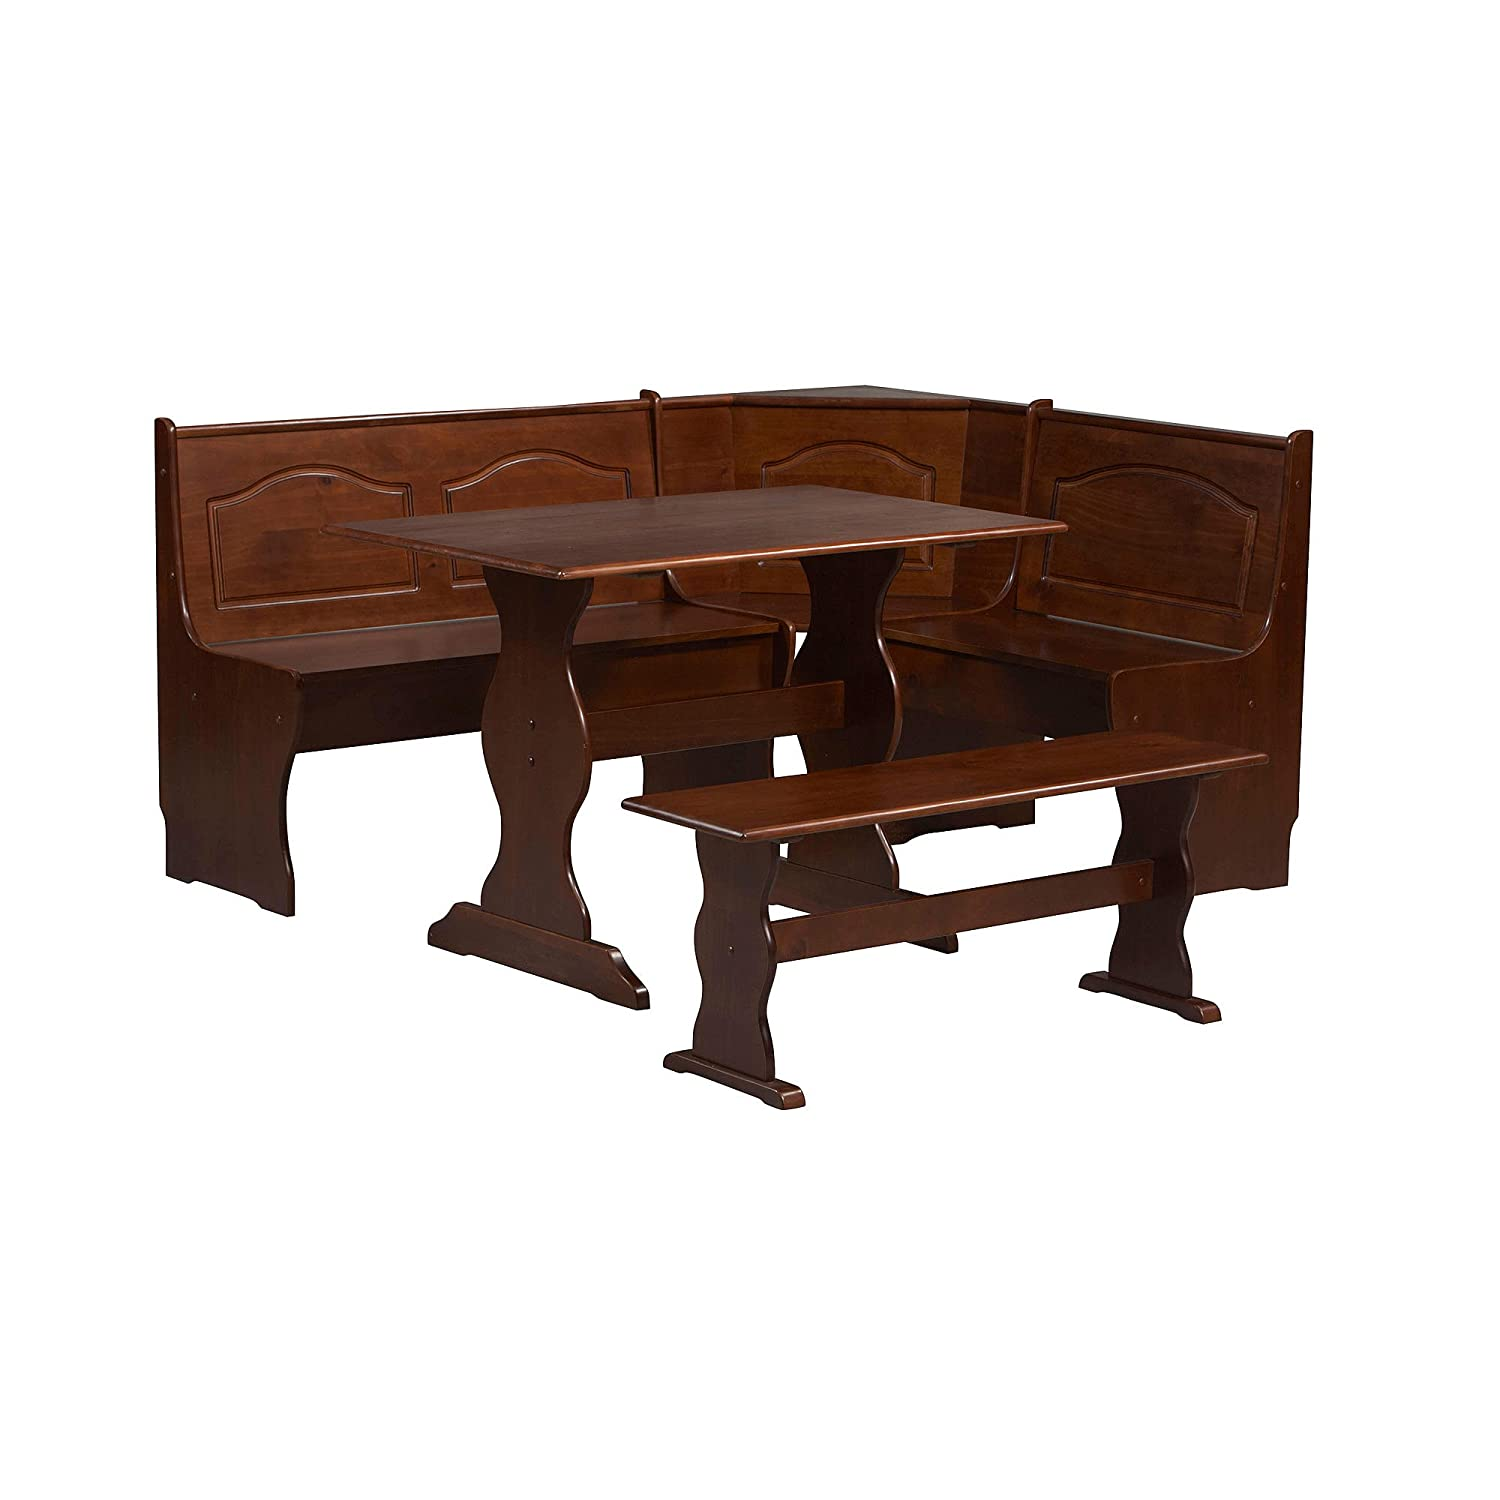 Amazon.com: Essential Home Walnut Emily Breakfast Nook: Kitchen U0026 Dining